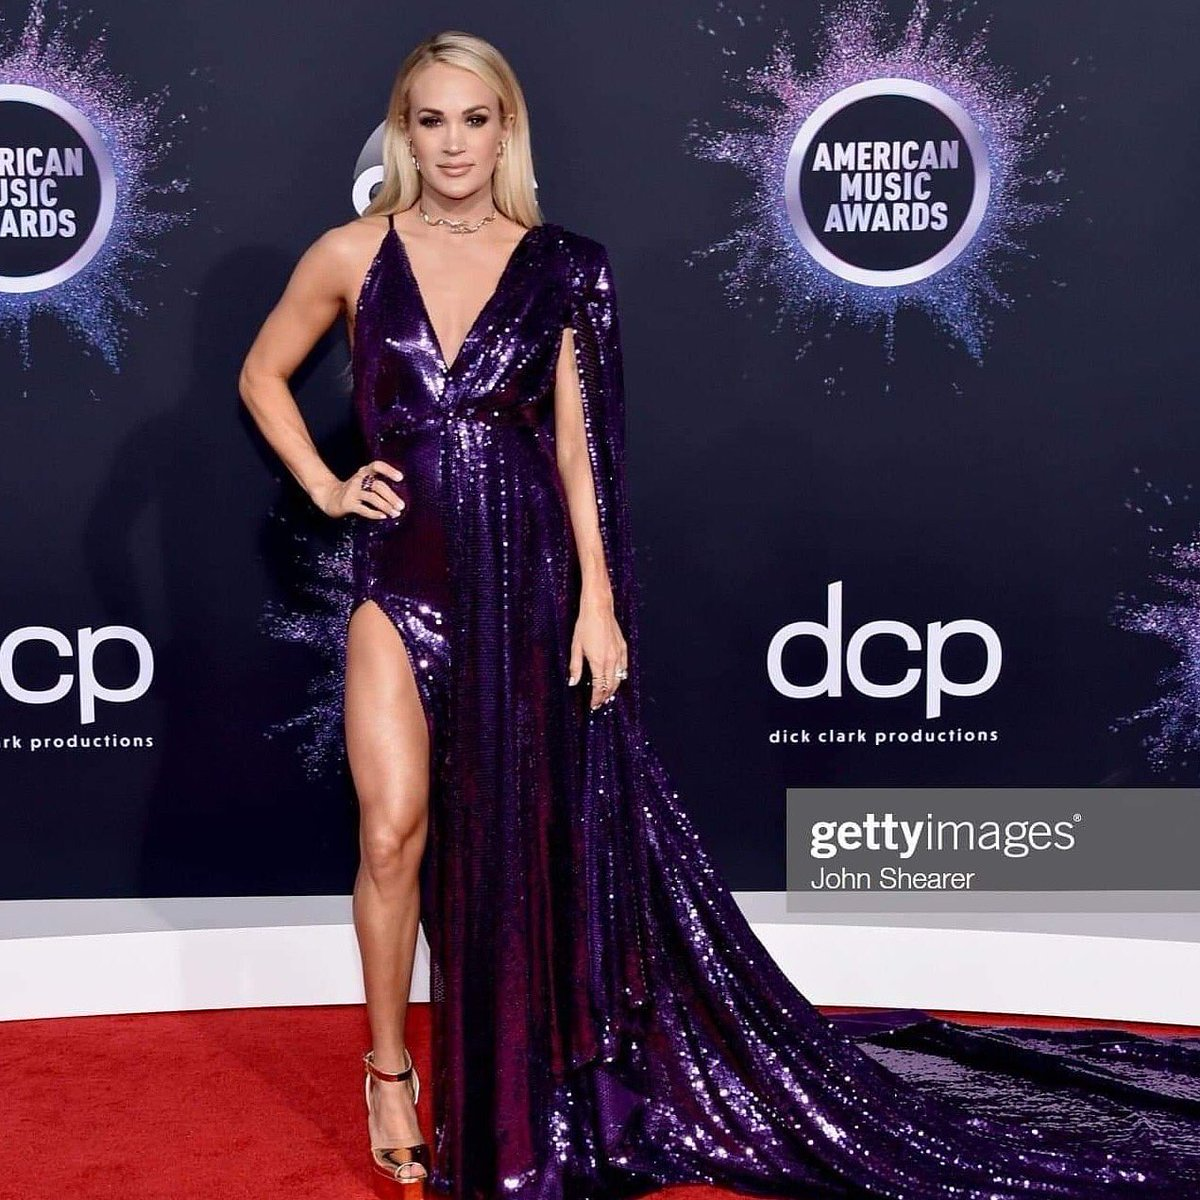 carrie-underwood-in-stello-gown-2019-american-music-awards